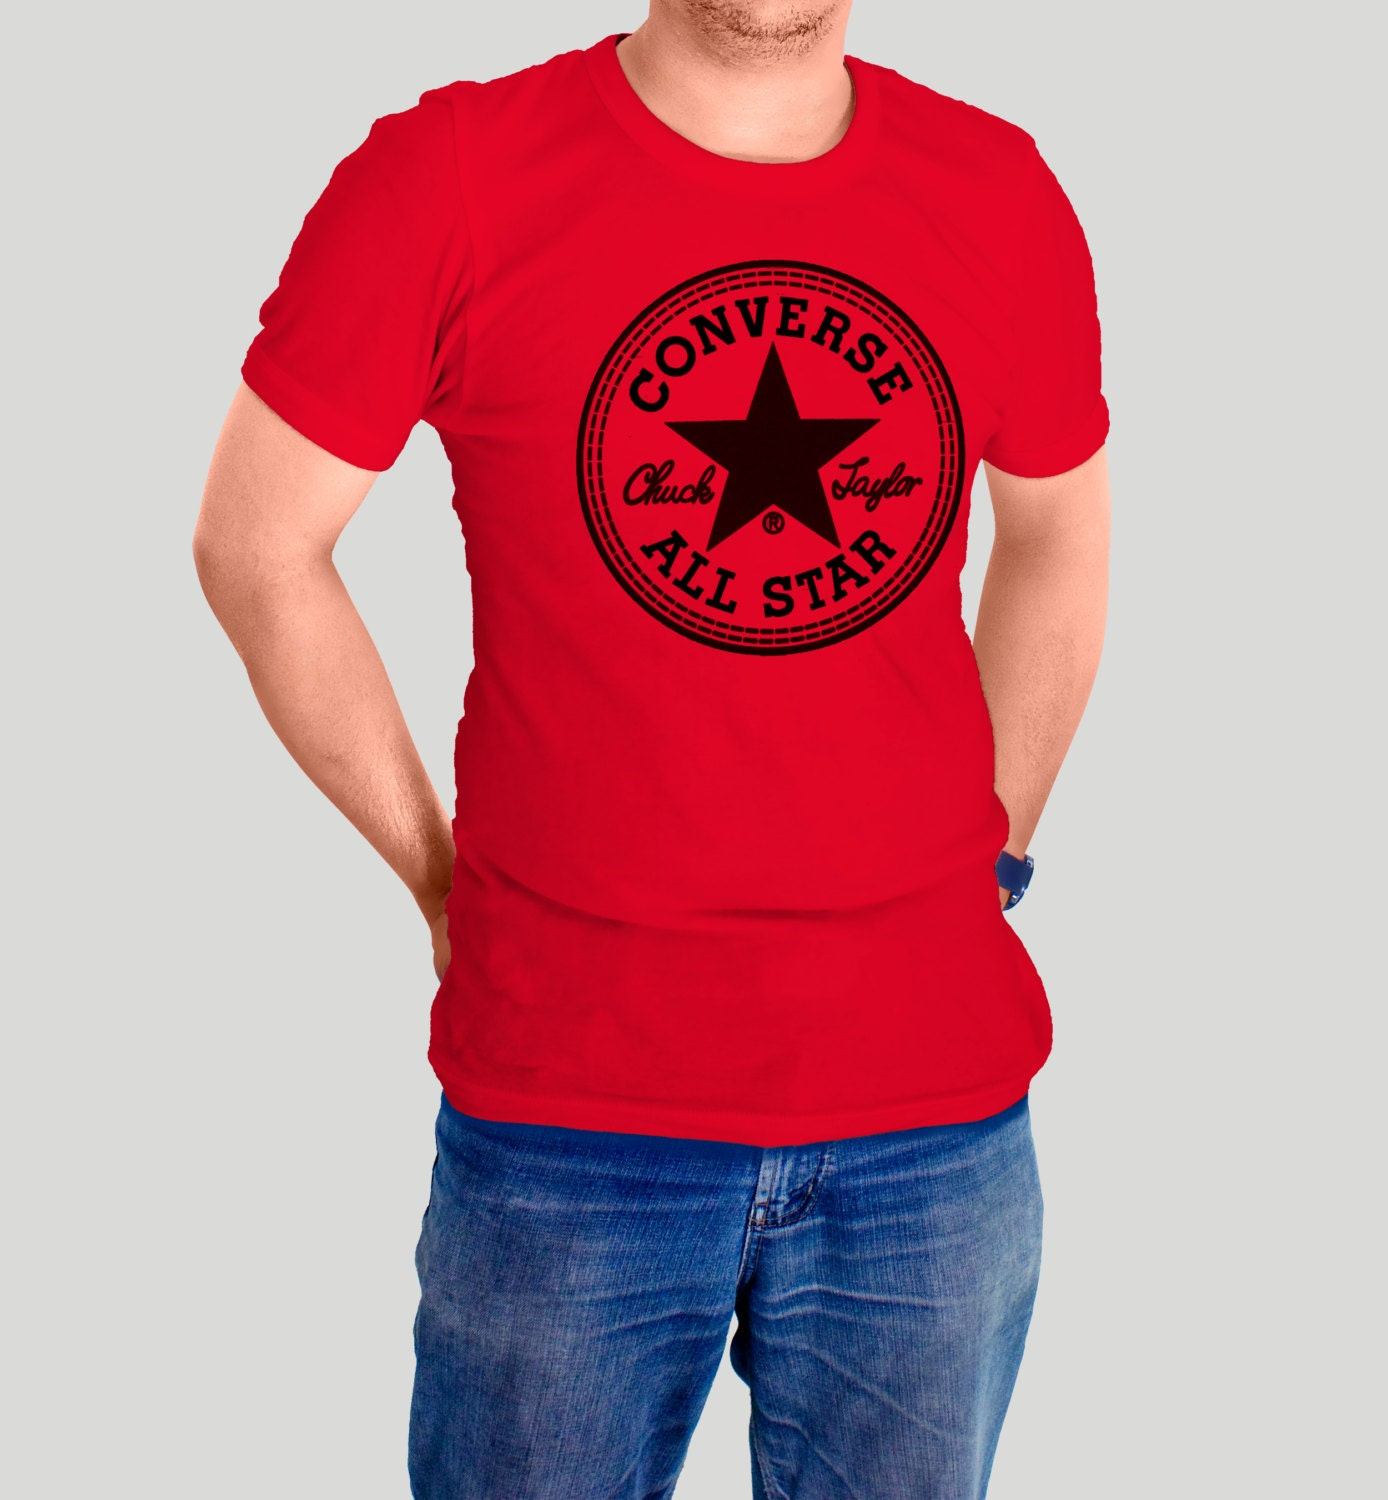 Converse all star t shirt chuck taylor t shirts classic for All star t shirts